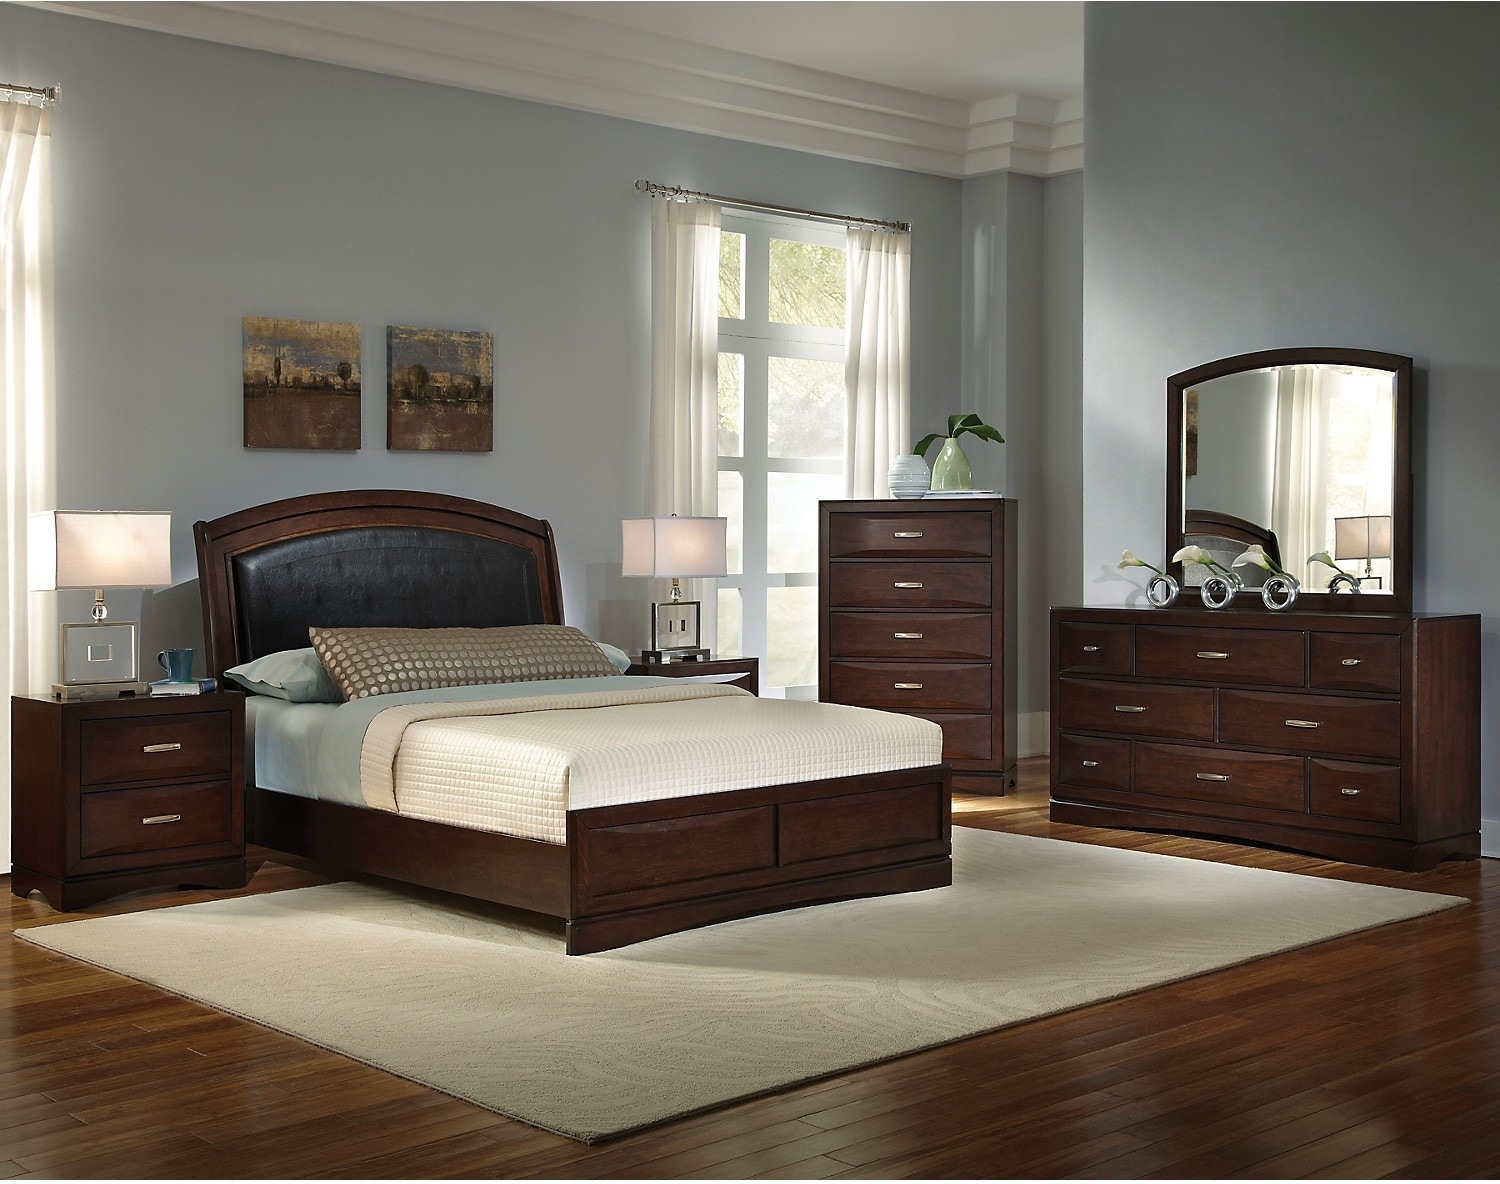 Http Www Thebrick Com Product Package Furniture Bedroom Bedroom Packages Beverly 8 Piece King Bedroom Set 1646446 1644229